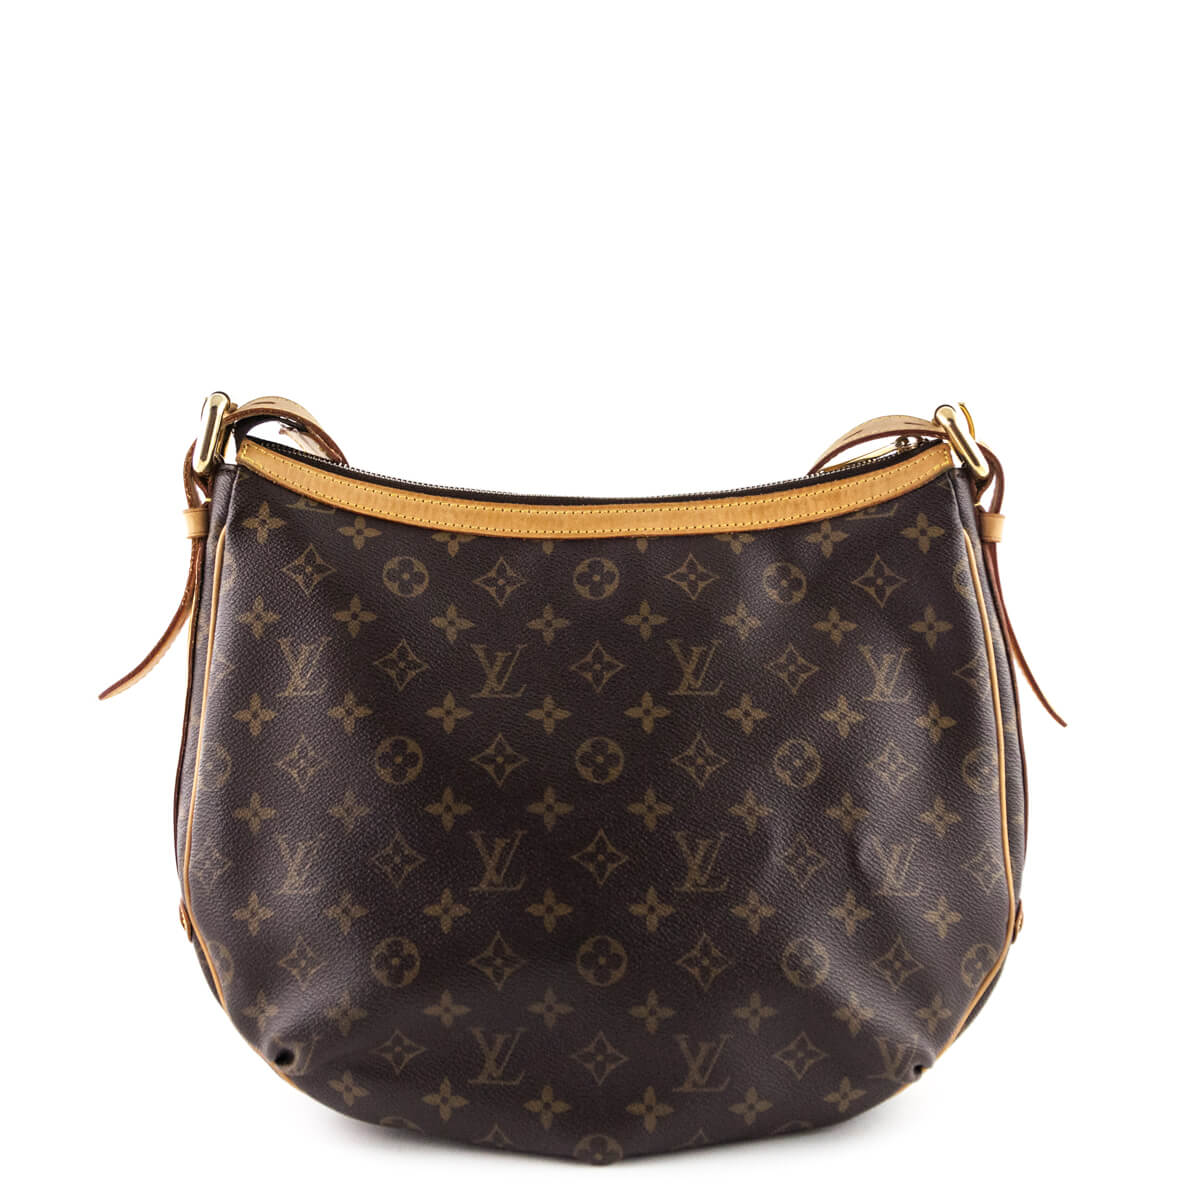 089340616ebf ... Louis Vuitton Monogram Tulum GM - LOVE that BAG - Preowned Authentic  Designer Handbags ...